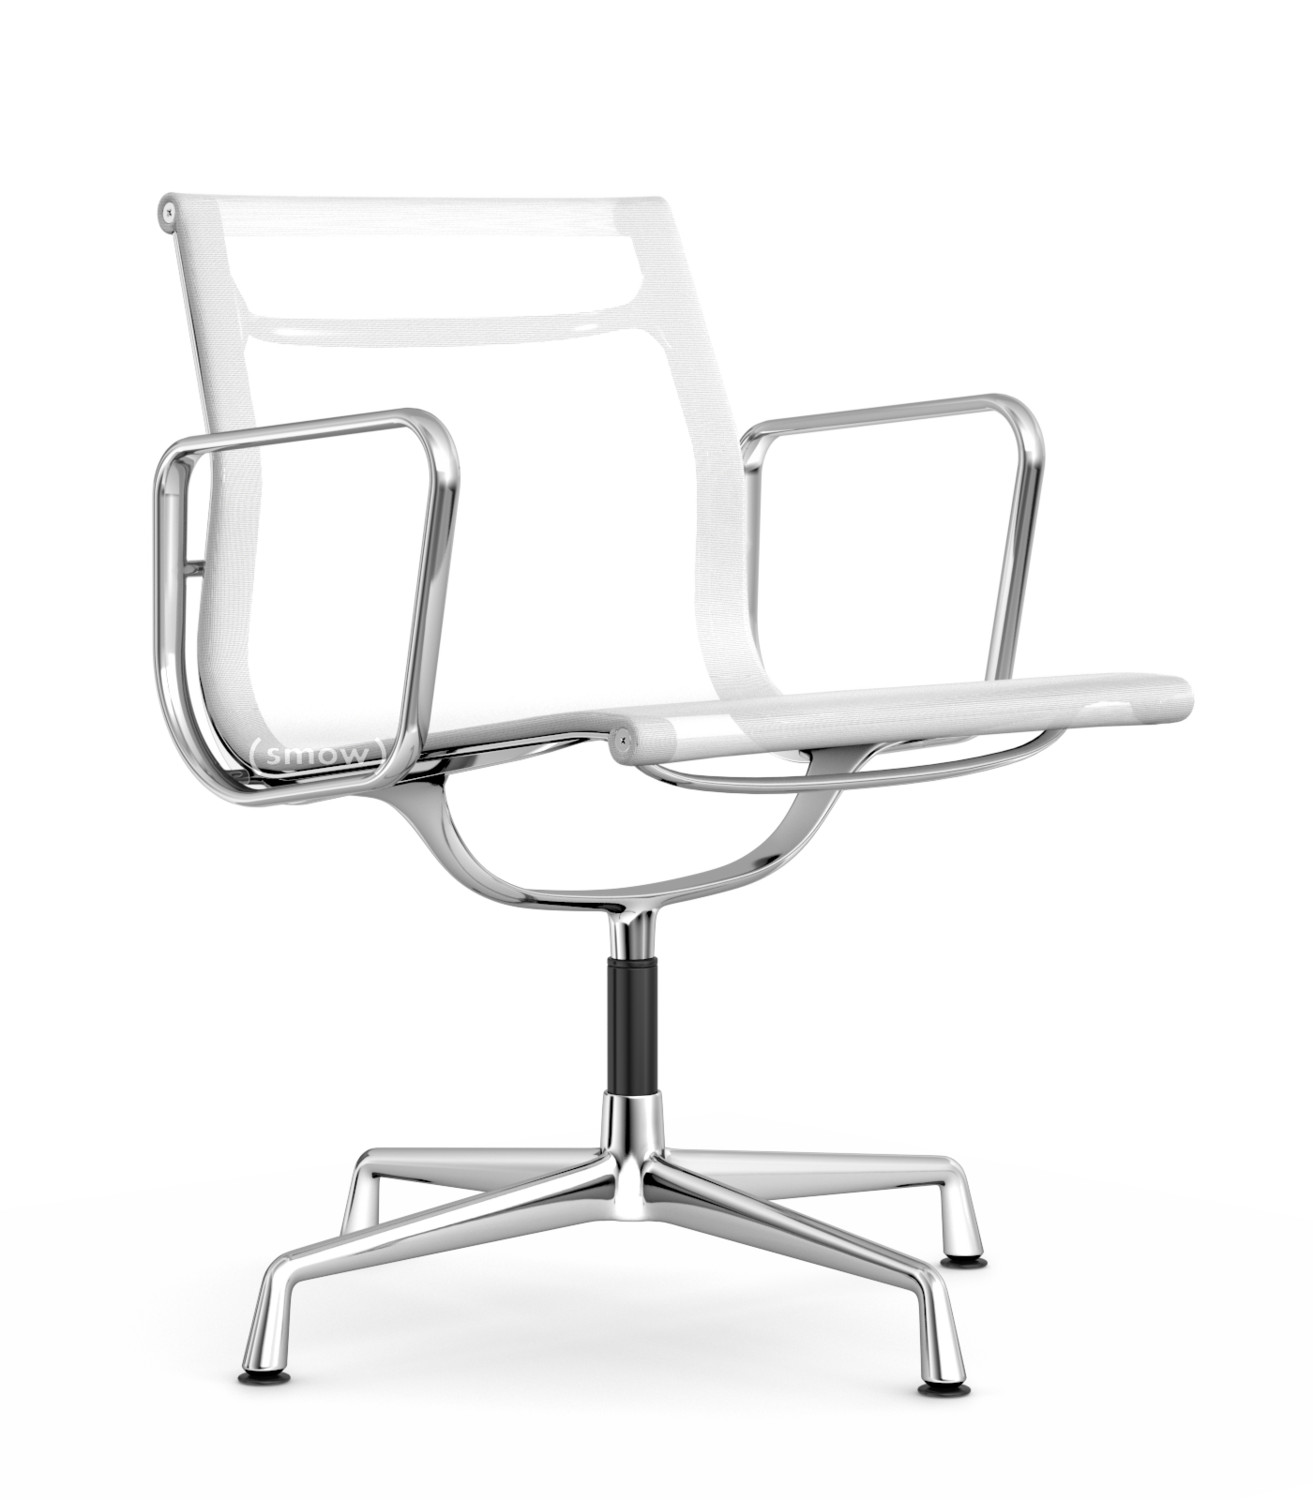 Vitra aluminium group ea 107 ea 108 ea 108 swivelling for Vitra ea 108 replica